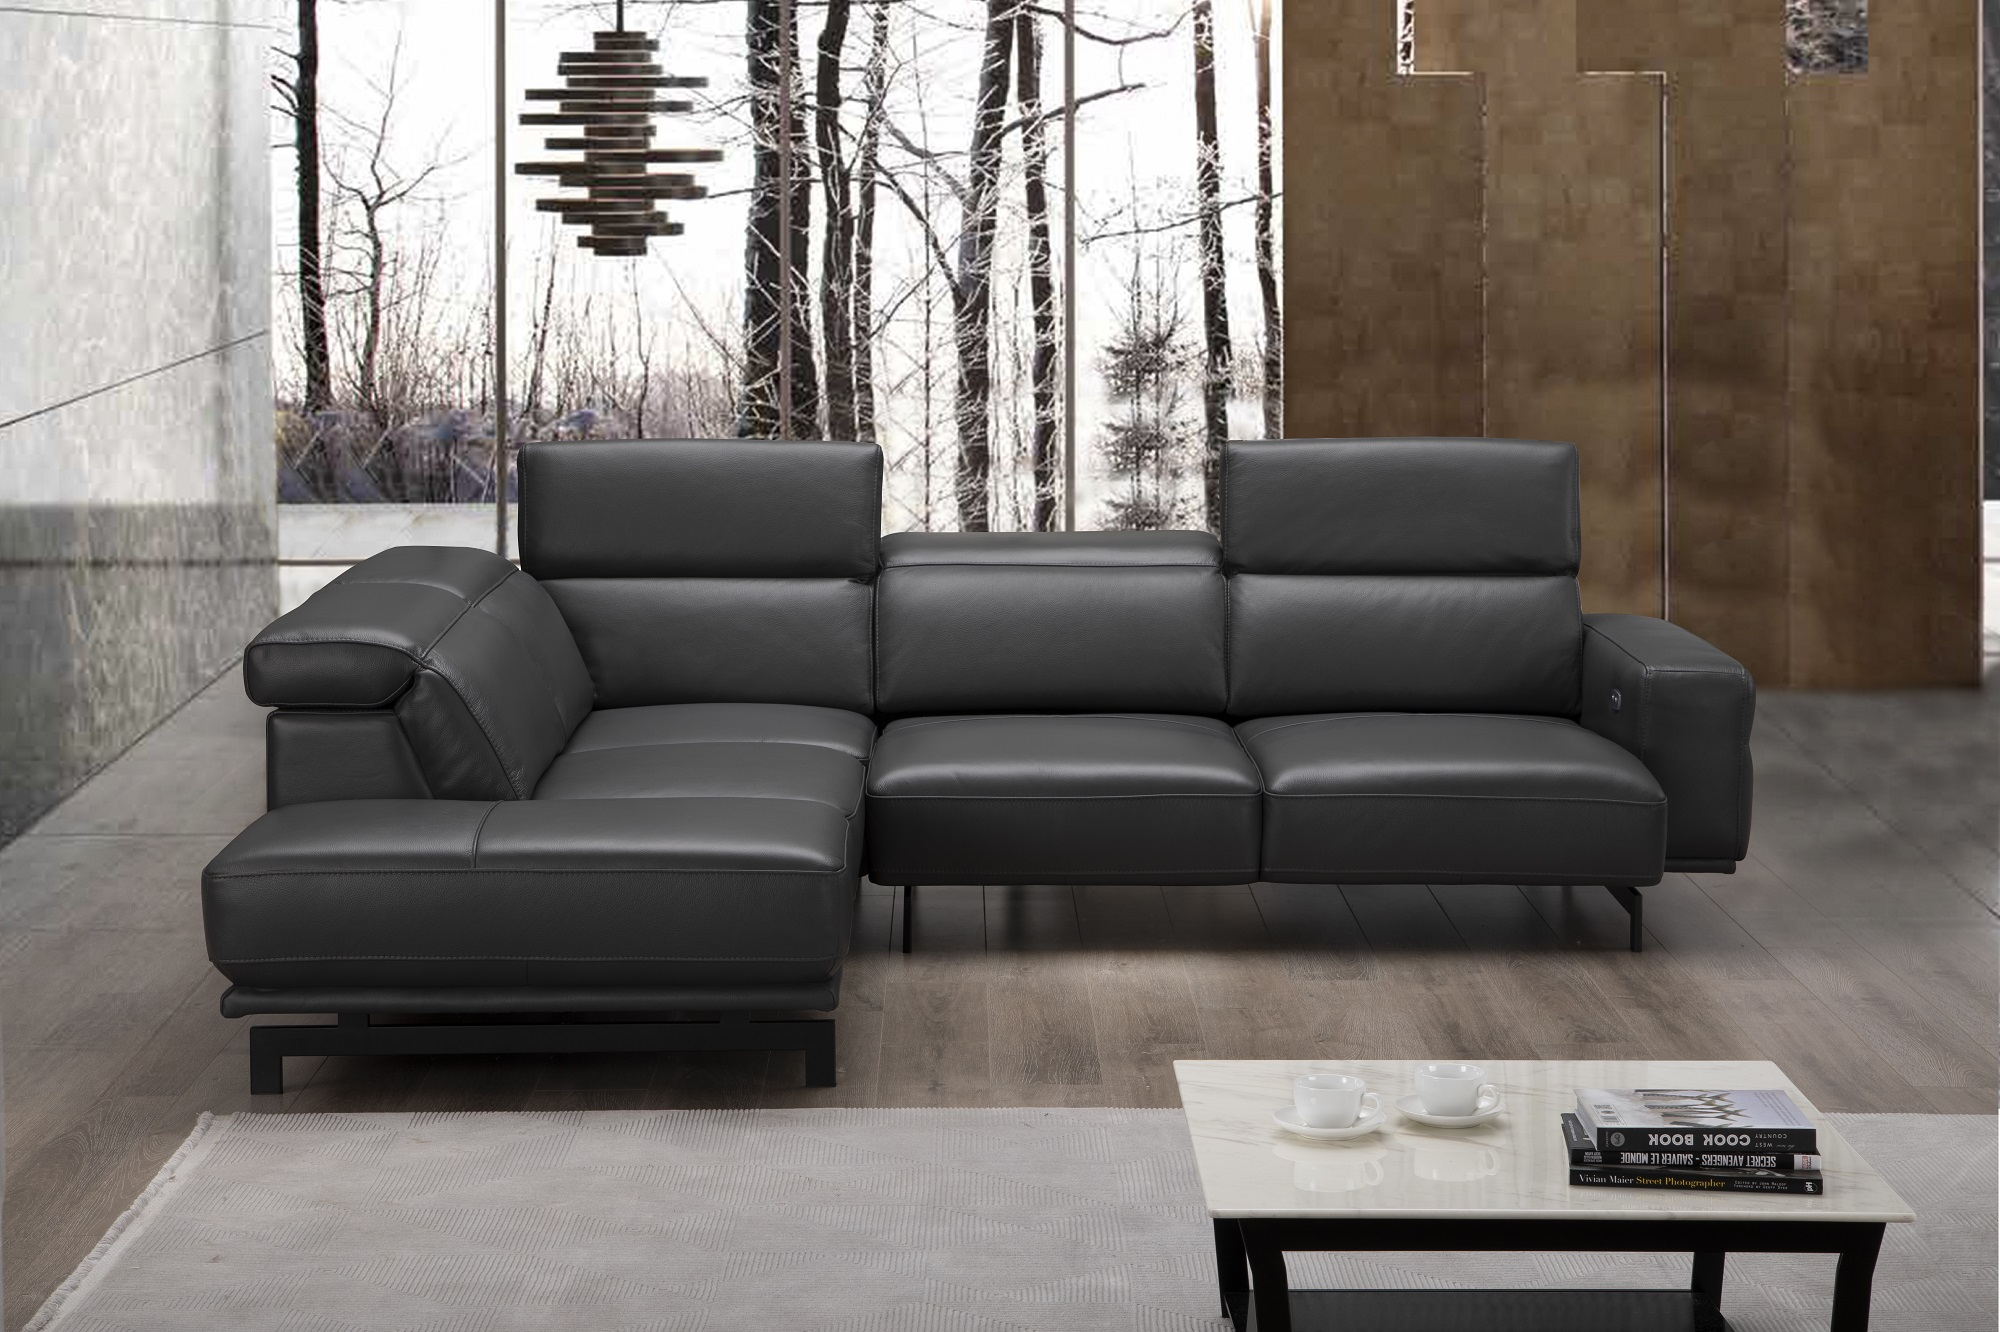 Sensational Advanced Adjustable Italian Leather Living Room Furniture Home Interior And Landscaping Thycampuscom